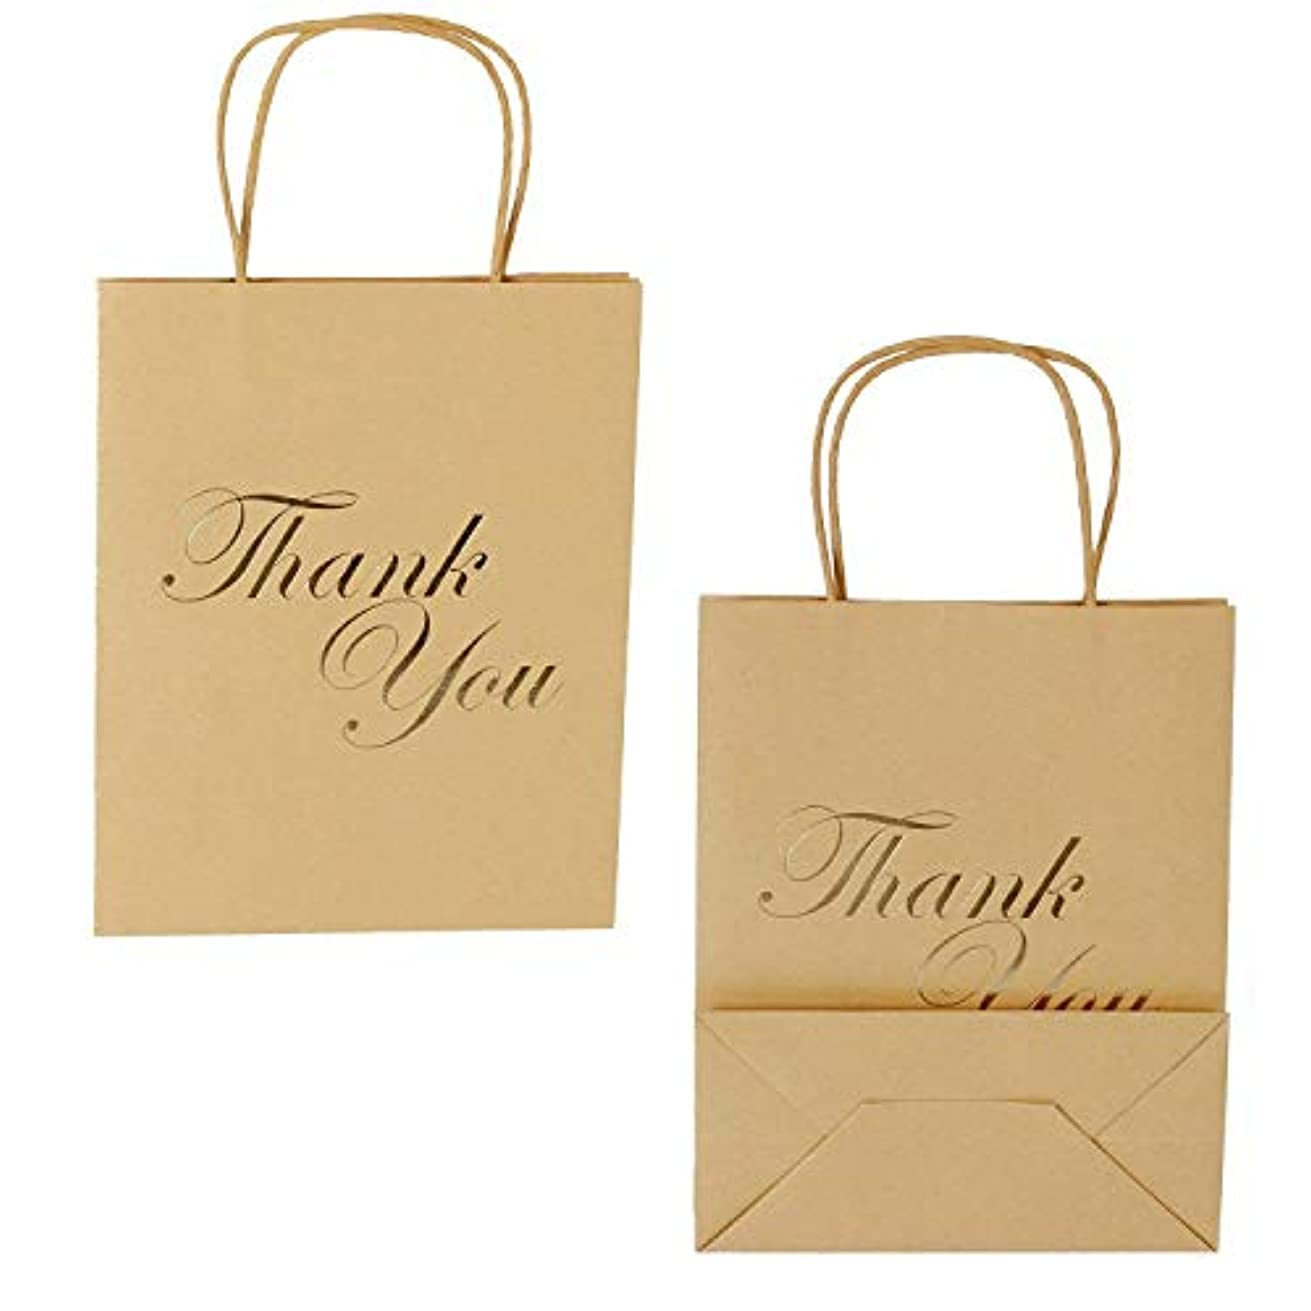 LaRibbons Medium Size Gift Bags - Gold Foil Thank You Brown Paper Bags with Handles for Wedding, Birthday, Baby Shower, Party Favors - 25 Pack - 8